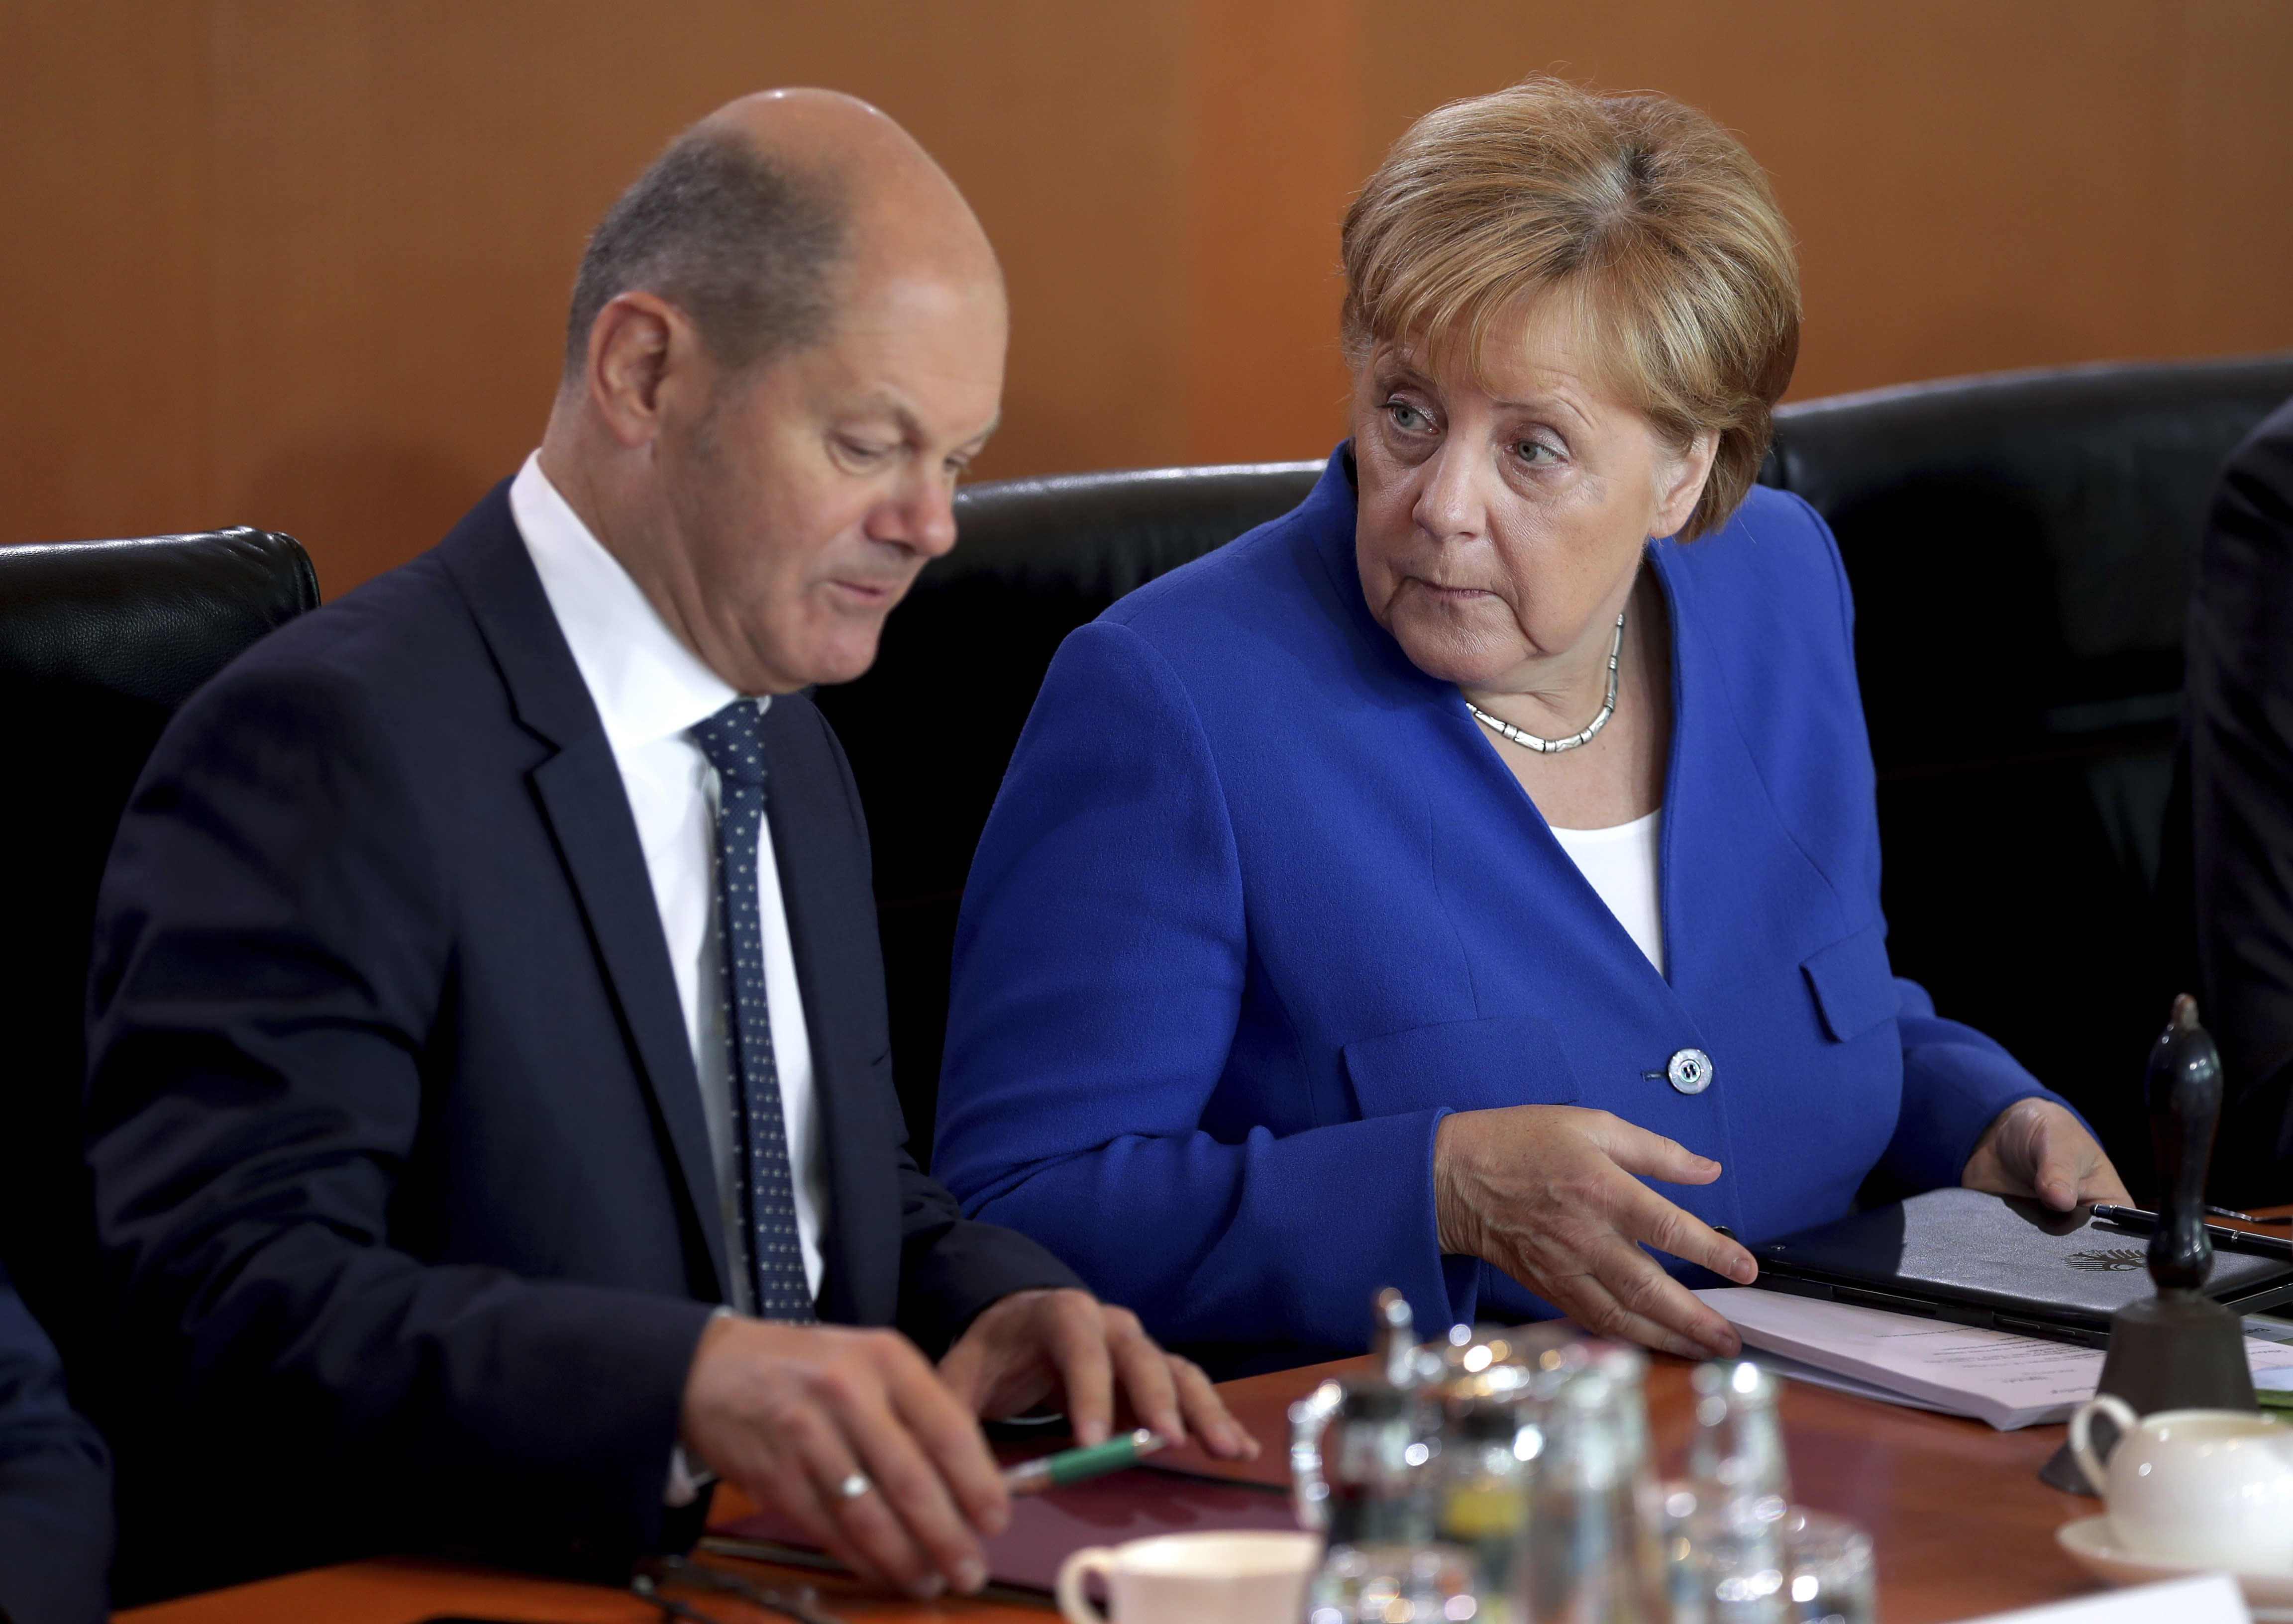 German Chancellor Angela Merkel, right, and German Finance Minister Olaf Scholz, left, talk as they arrive for the weekly cabinet meeting at the Chancellery in Berlin, Germany, Wednesday, Aug. 21, 2019. The German government sold 30-year bonds at a negative interest rate Wednesday Aug. 21, 2019, in a sign of the clouds over markets and future growth as well as increased expectations that more central bank stimulus is likely on the way.(AP Photo/Michael Sohn)